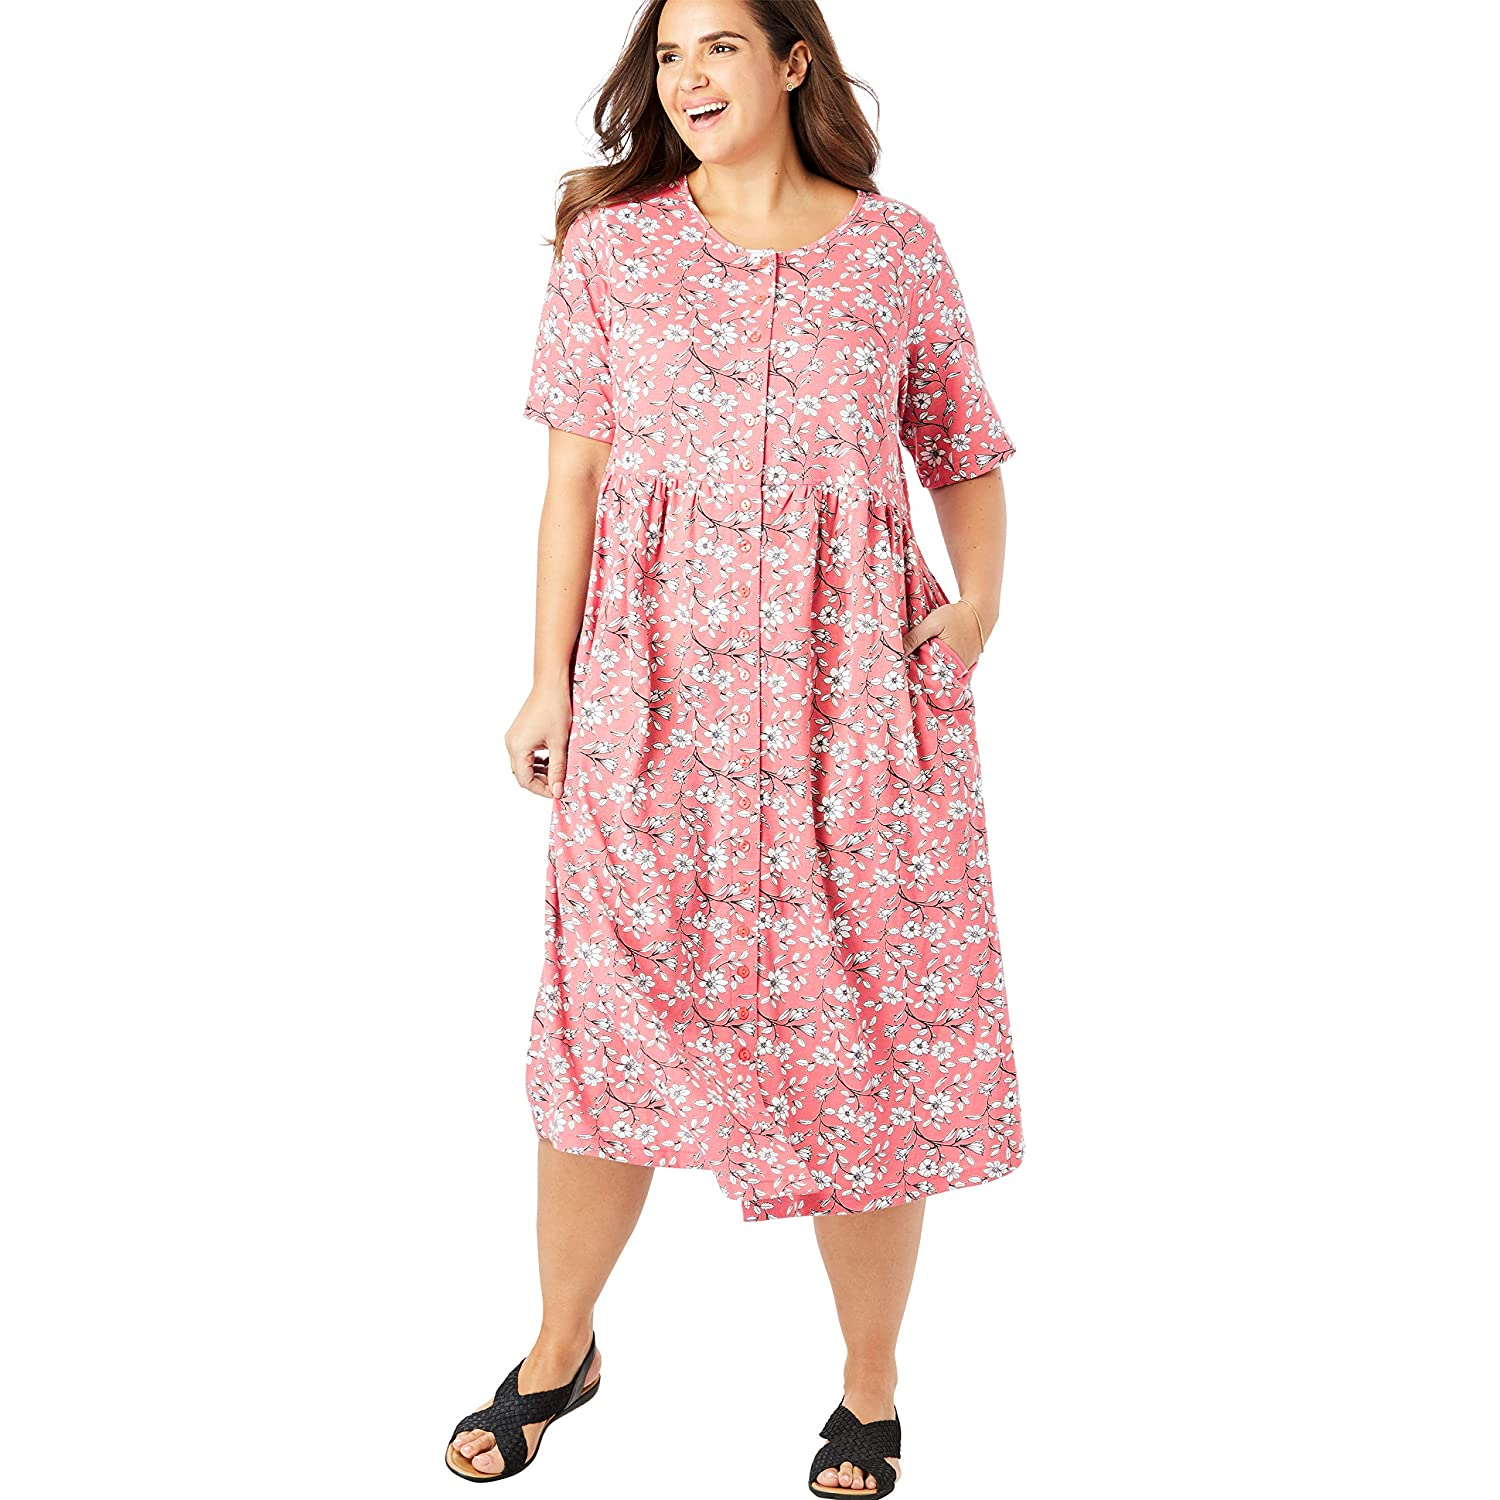 9c8fa4e81b4 Only Necessities Women s Woman Within Plus Size Petite Button-Front  Essential Dress at Amazon Women s Clothing store